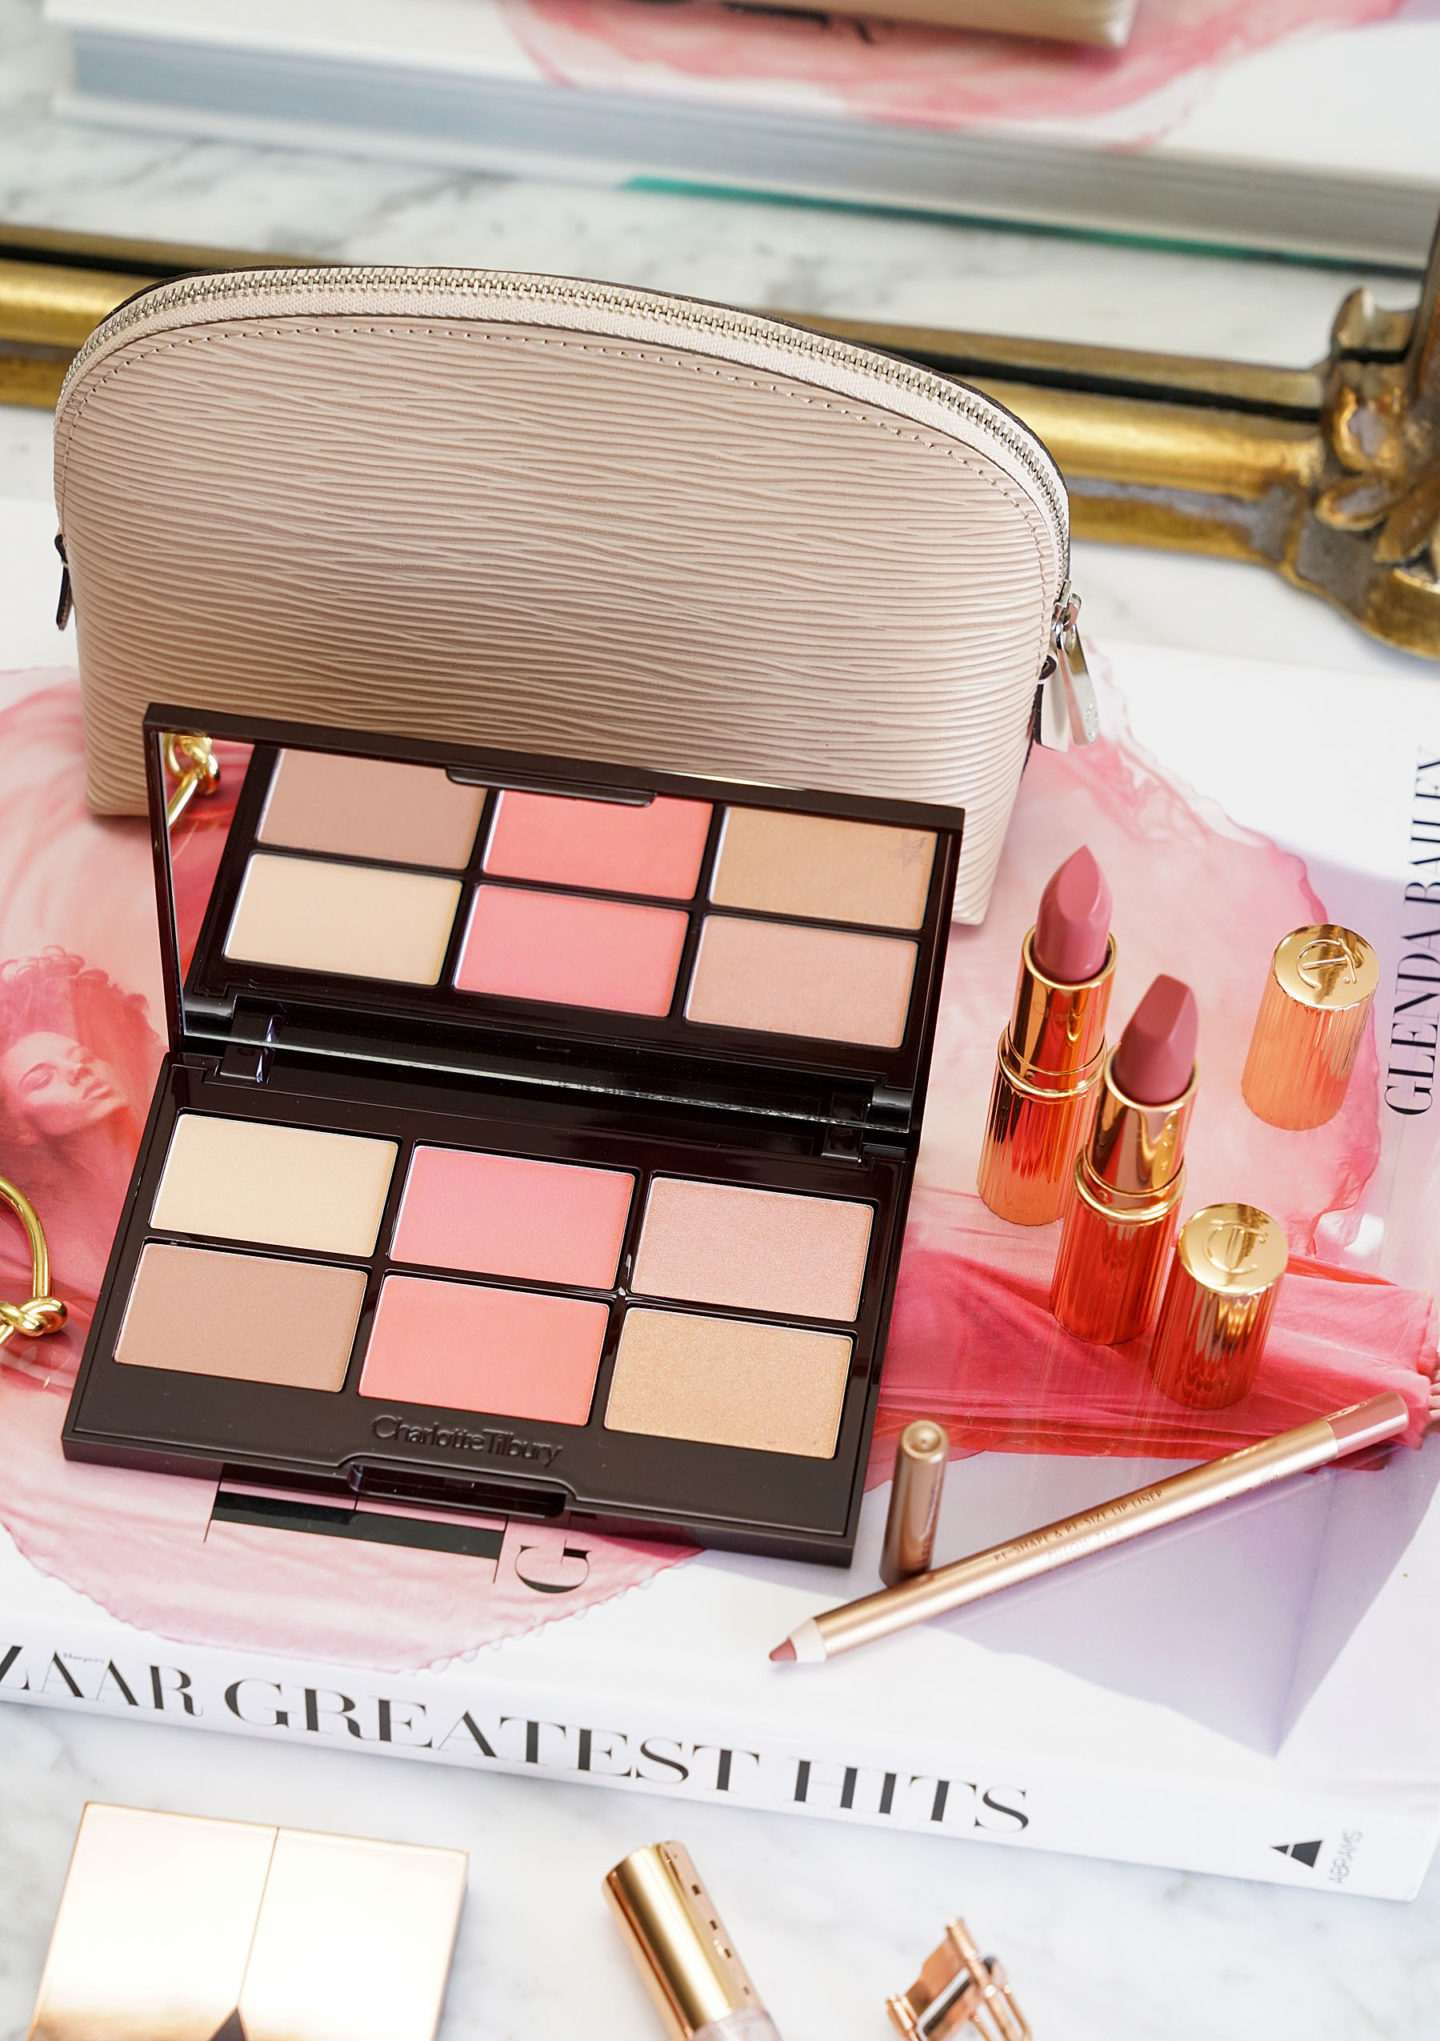 Nordstrom Anniversary Charlotte Tilbury Glowing Pretty Skin Palette and Pretty Pink Lip Set Review